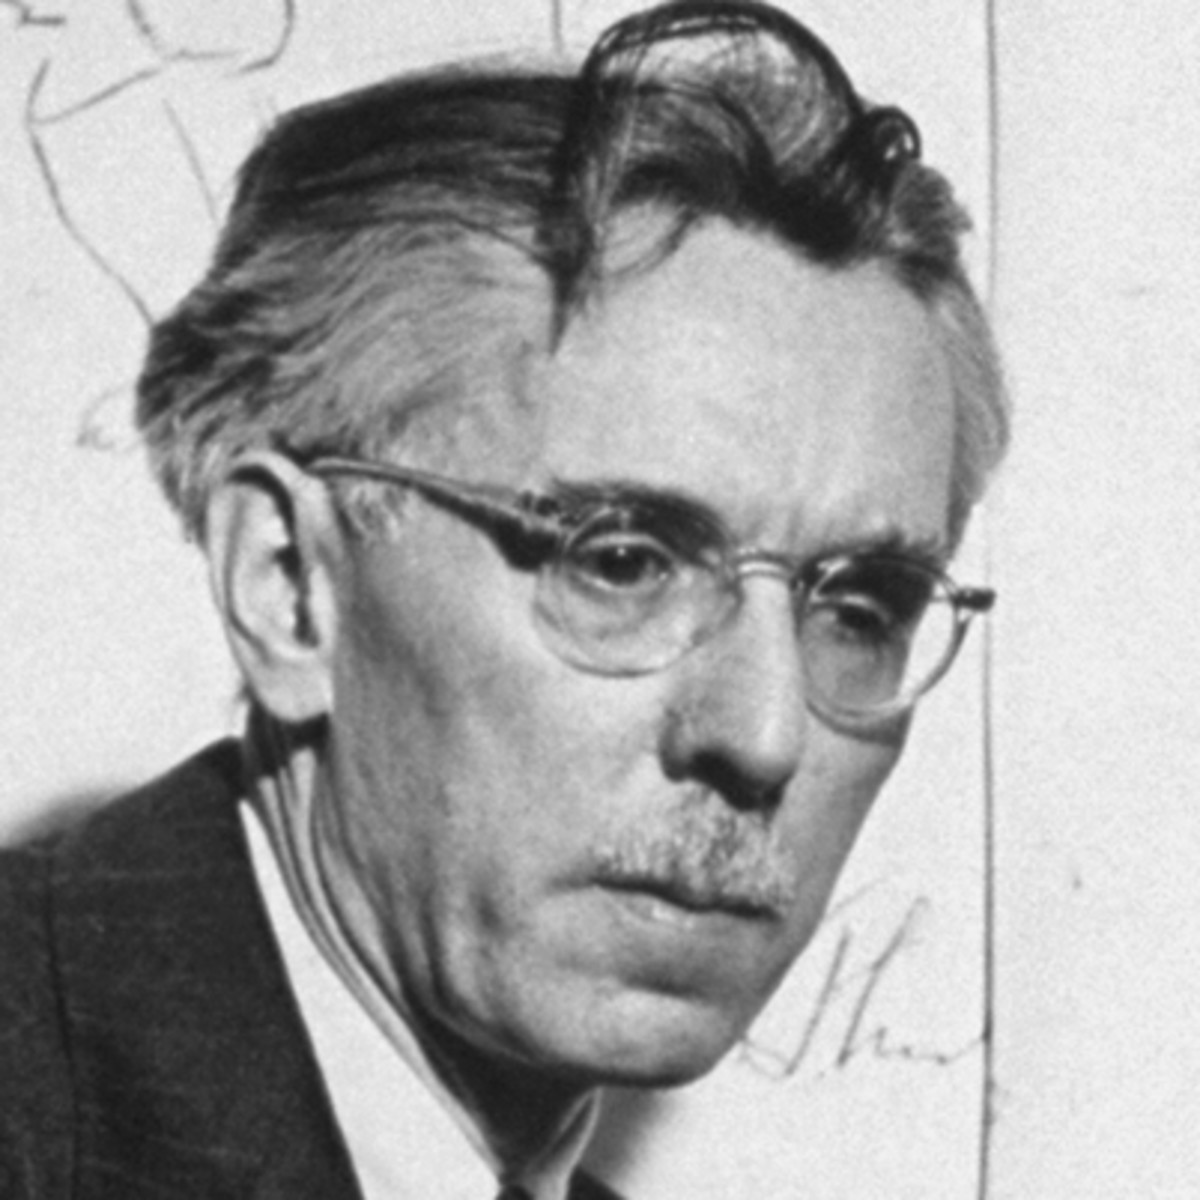 james thurber the social encyclopedia james thurber biographycomimagetsharemtiwnja4n